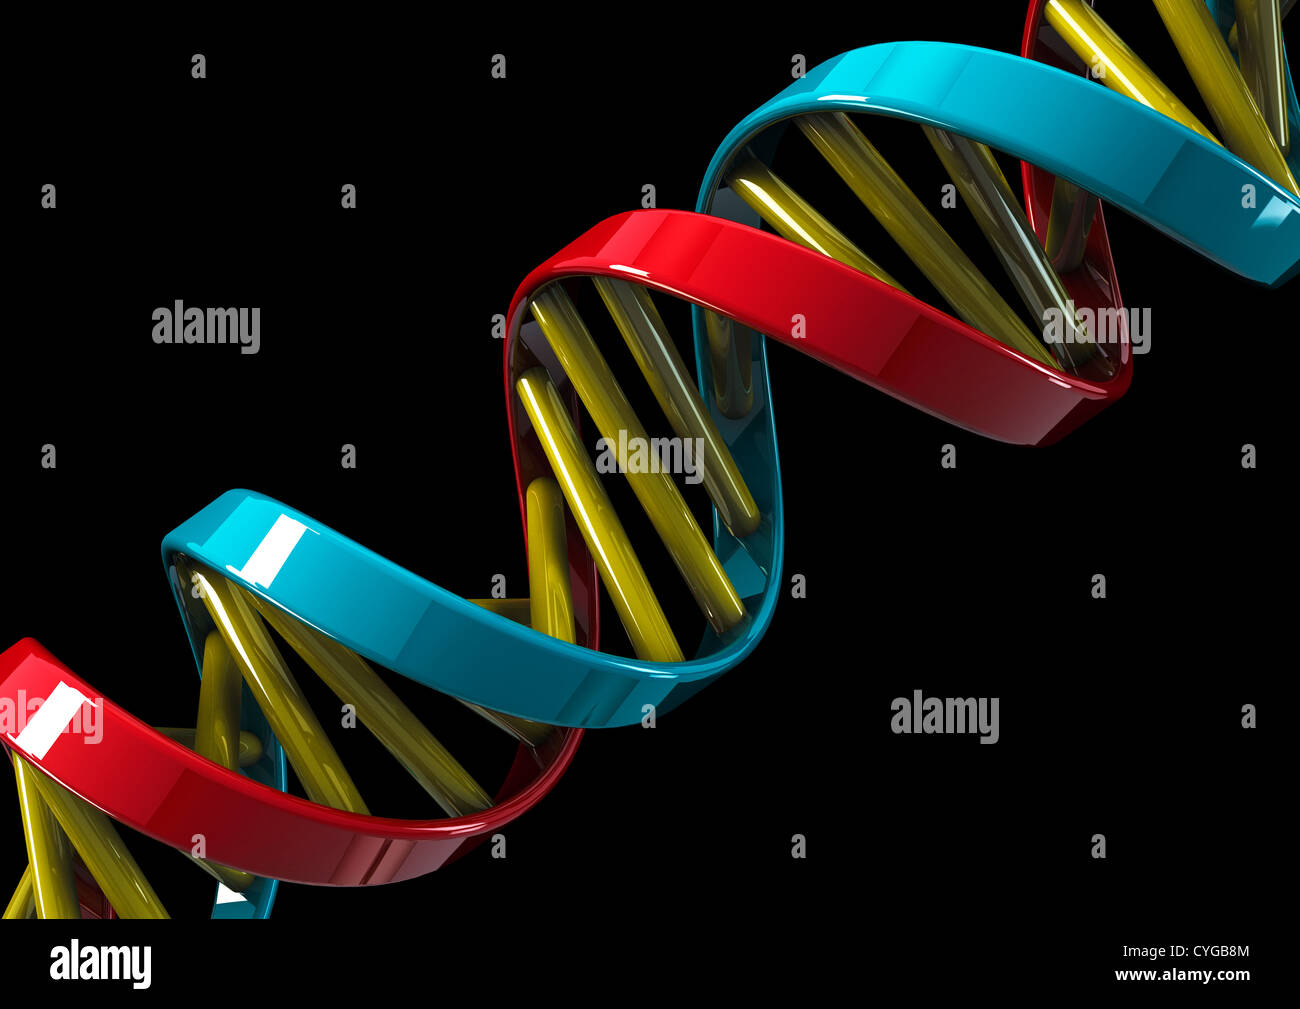 8x12 FT Educational Vinyl Photography Backdrop,Cell Chromosome DNA Gene Genome Study Double Helix Evolution Science Research Background for Photo Backdrop Baby Newborn Photo Studio Props